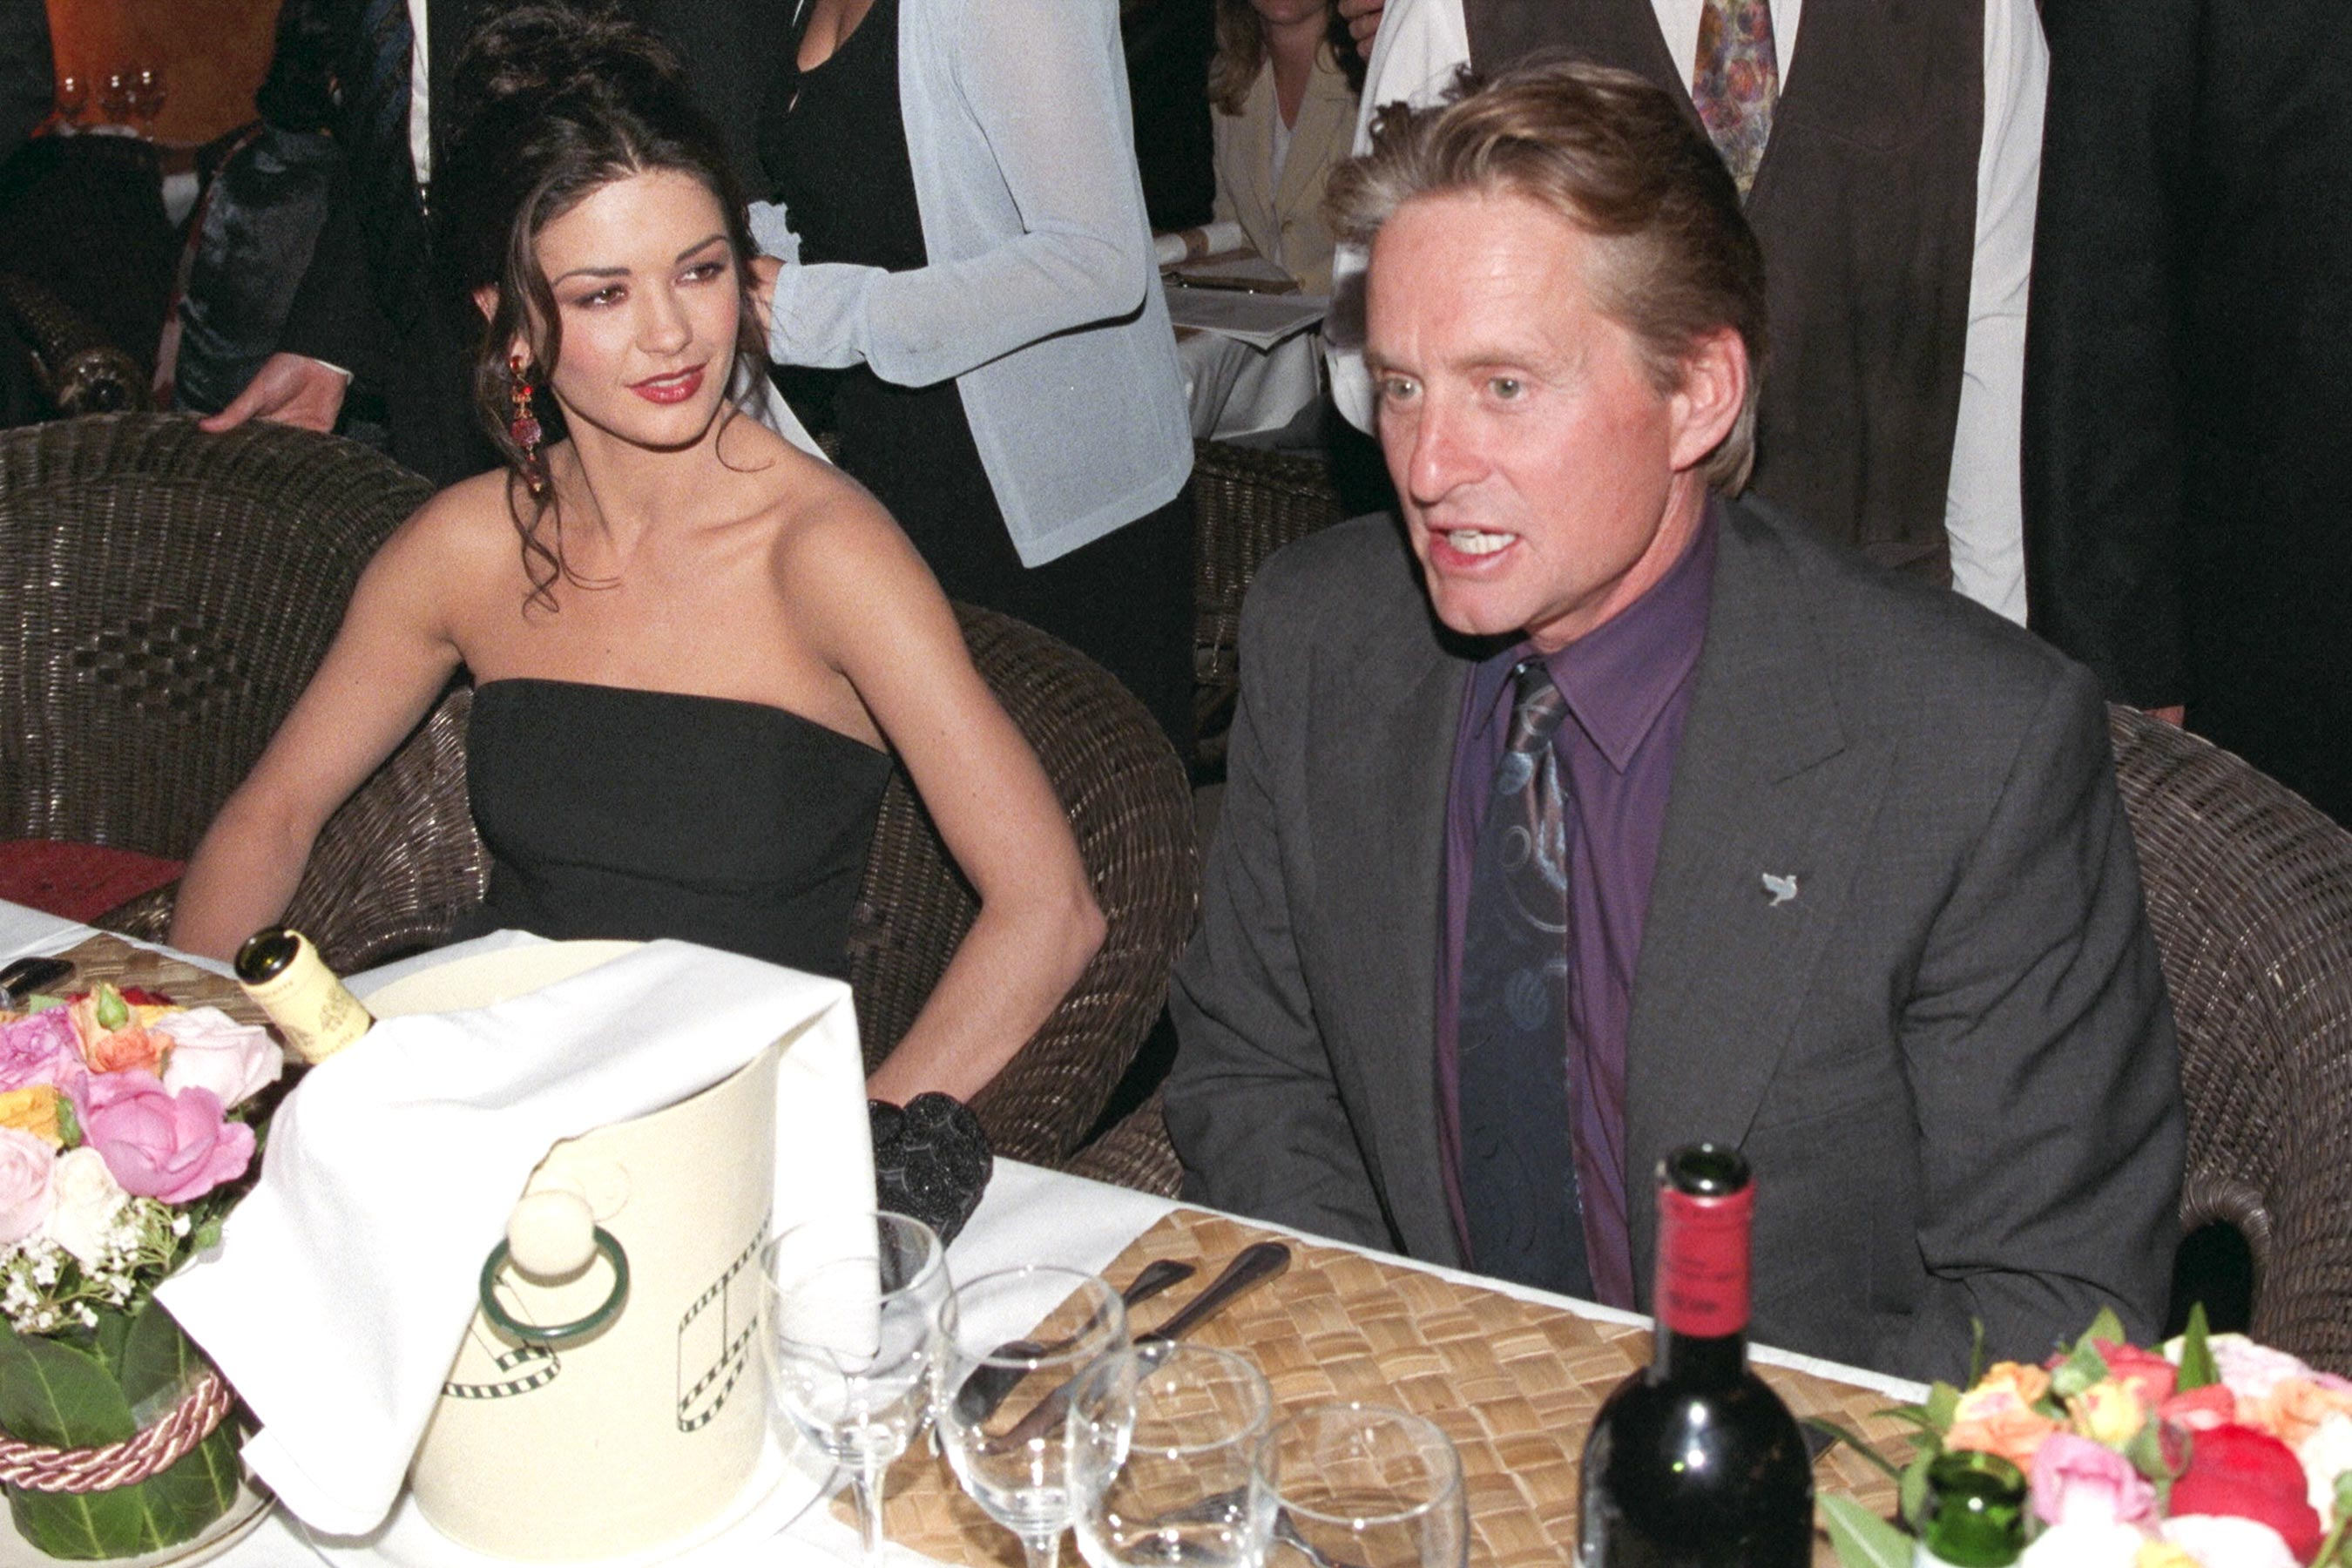 See When Catherine Zeta-Jones Met Michael Douglas for the 'First Time' in Sweet Throwback Photo